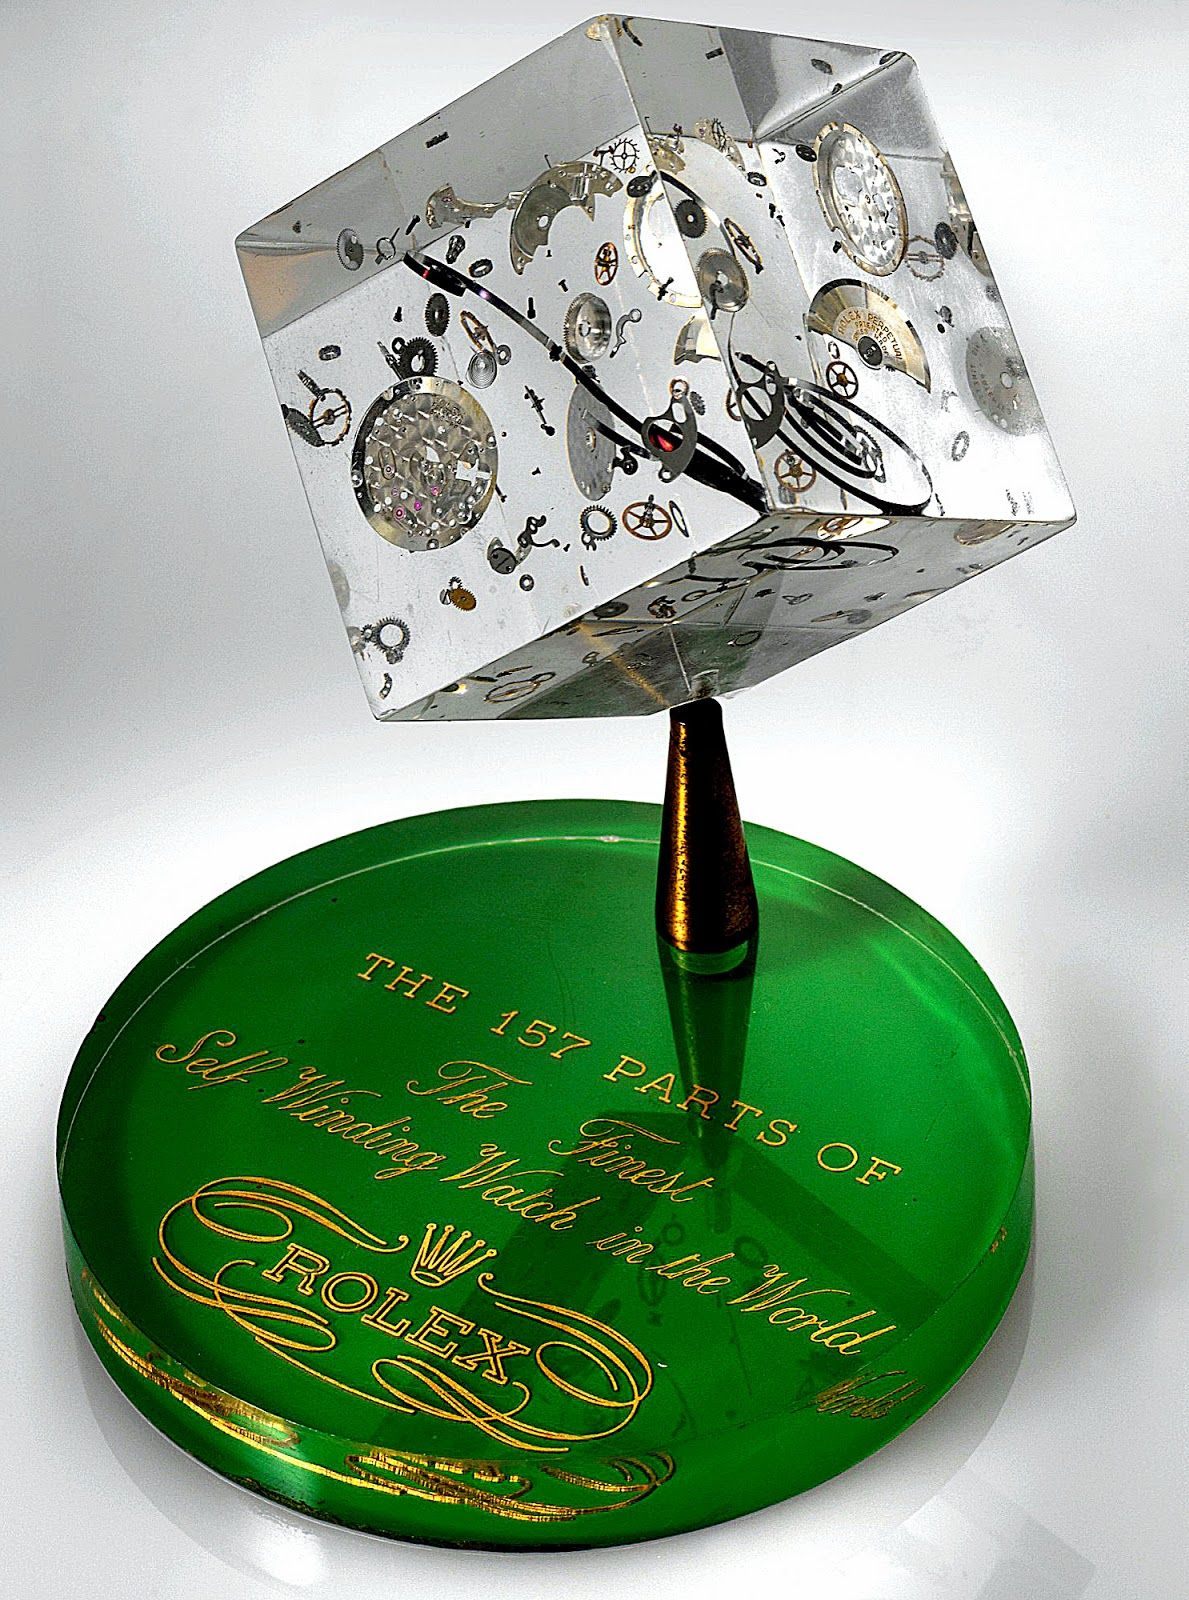 Rolex Movement Floating In An Acrylic Cube 157 parts